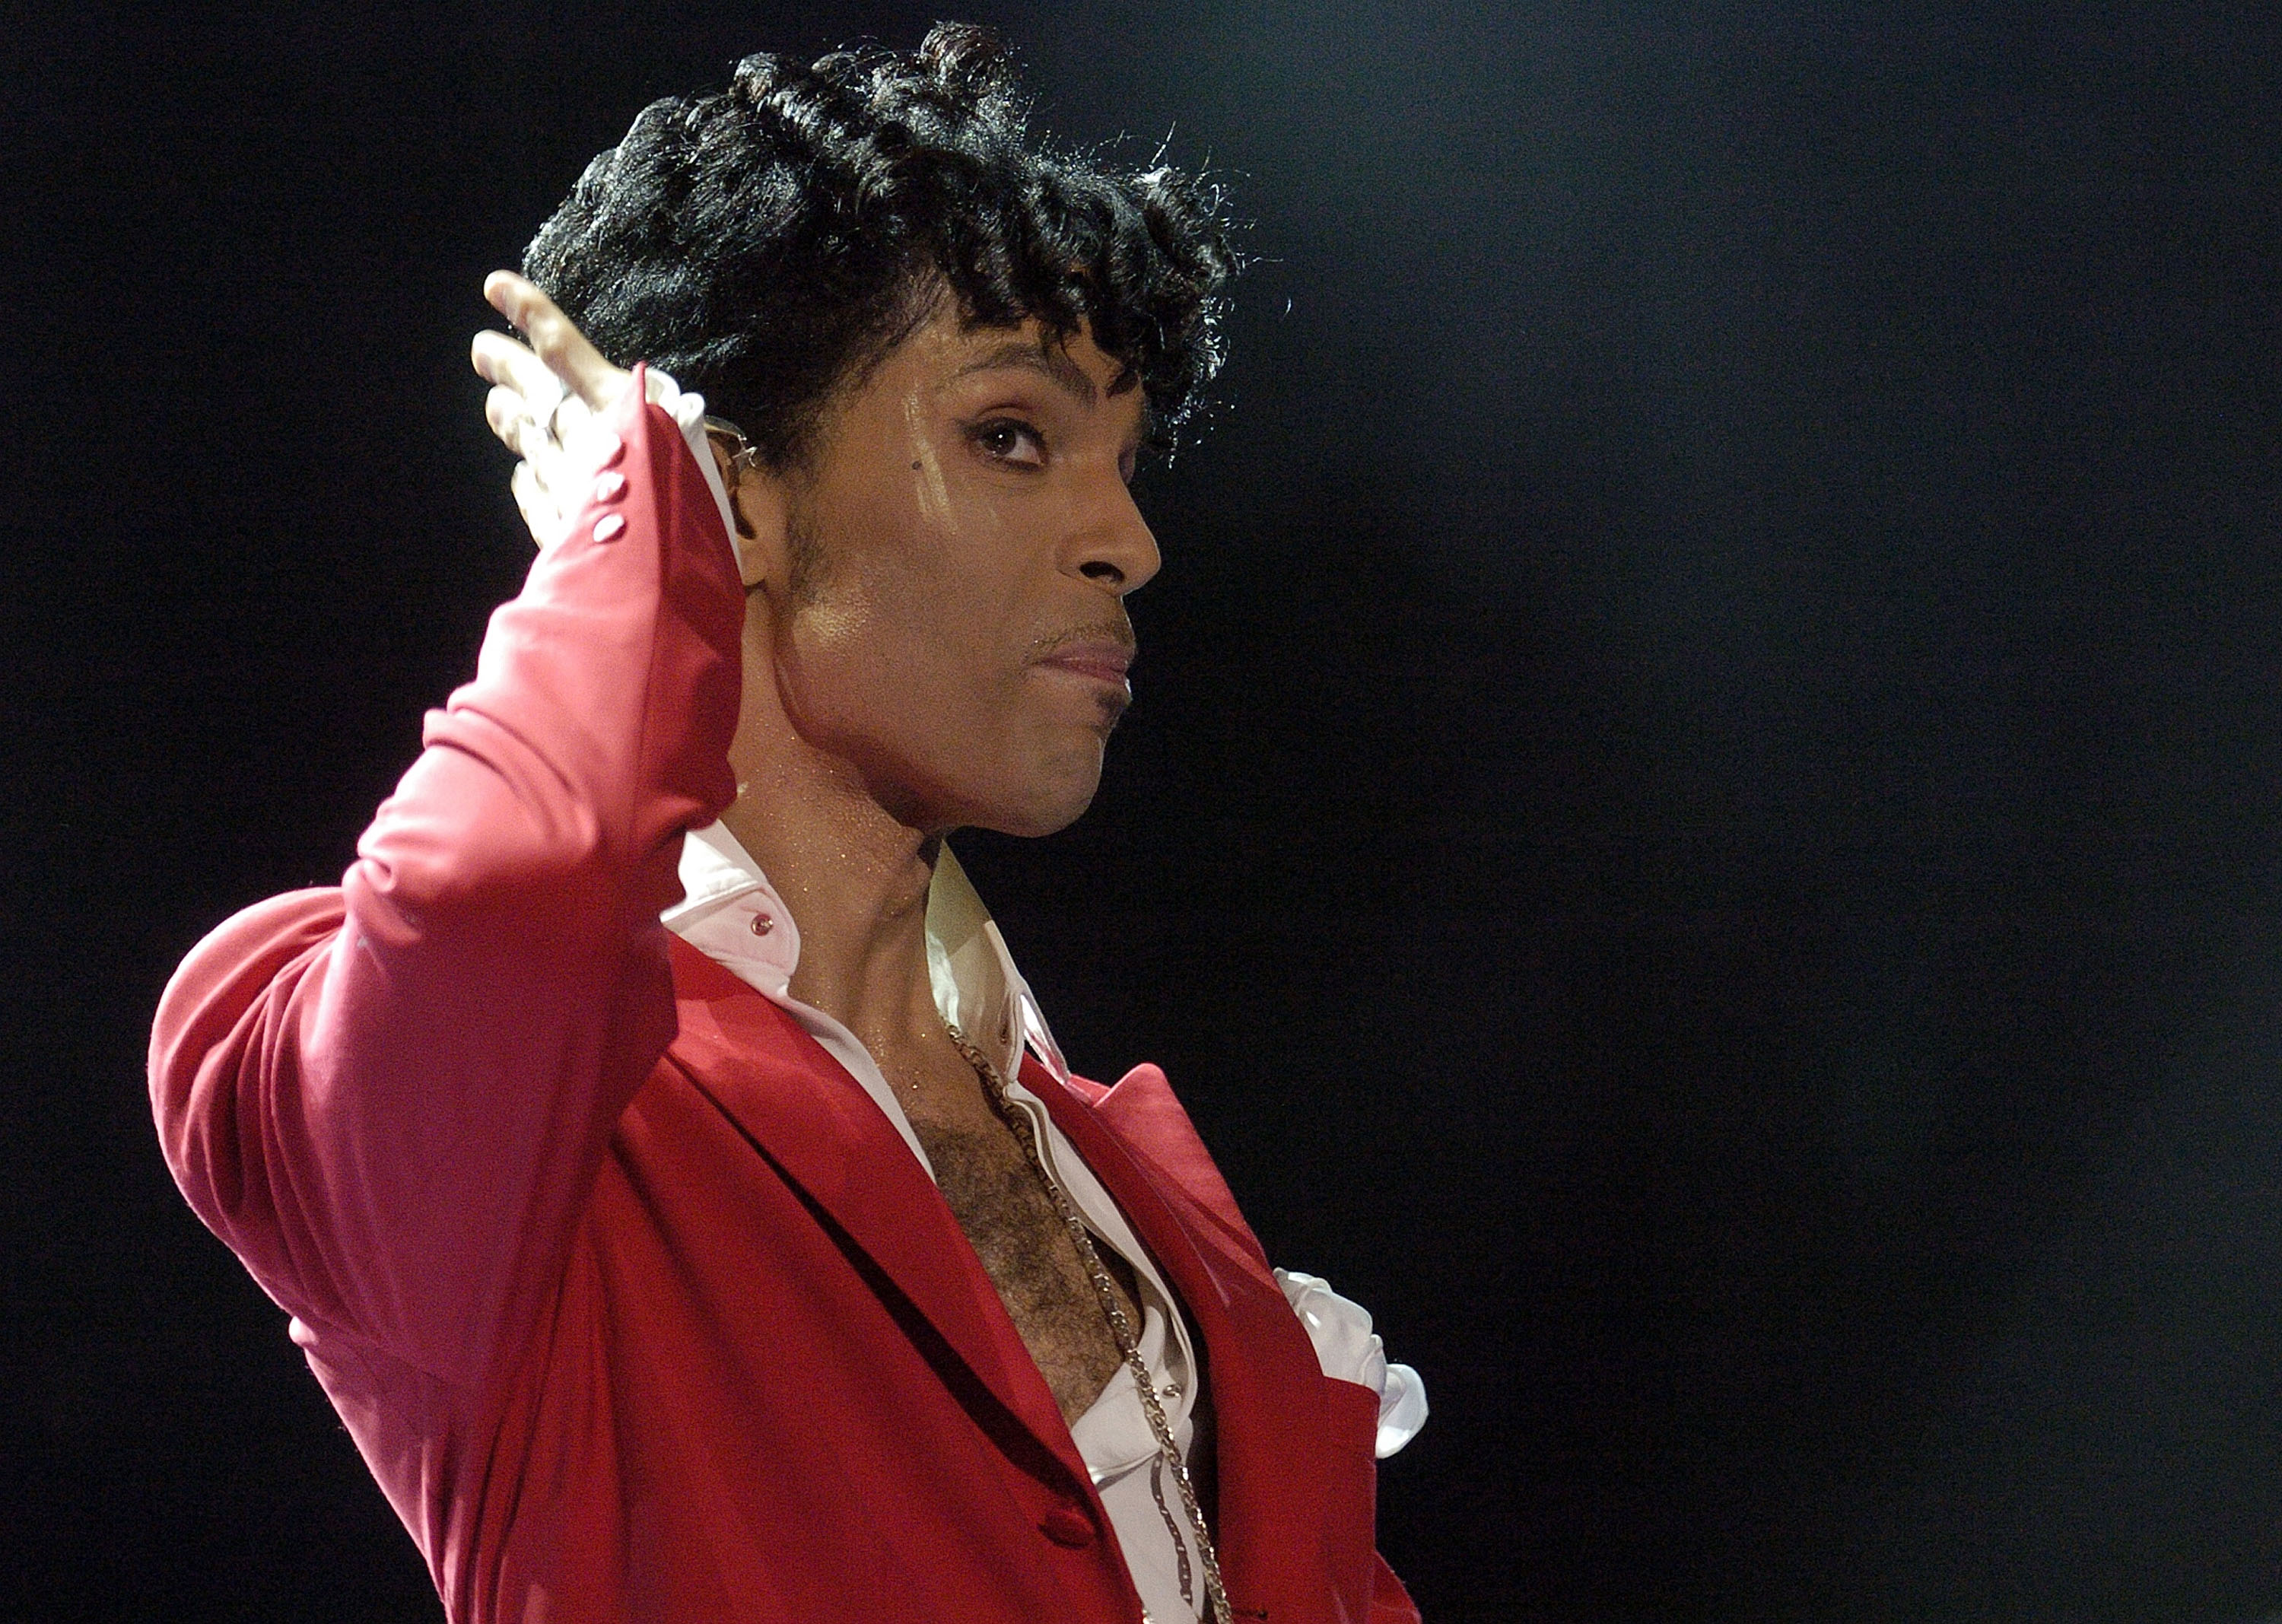 Prince fans can rejoice as new posthumous album is confirmed